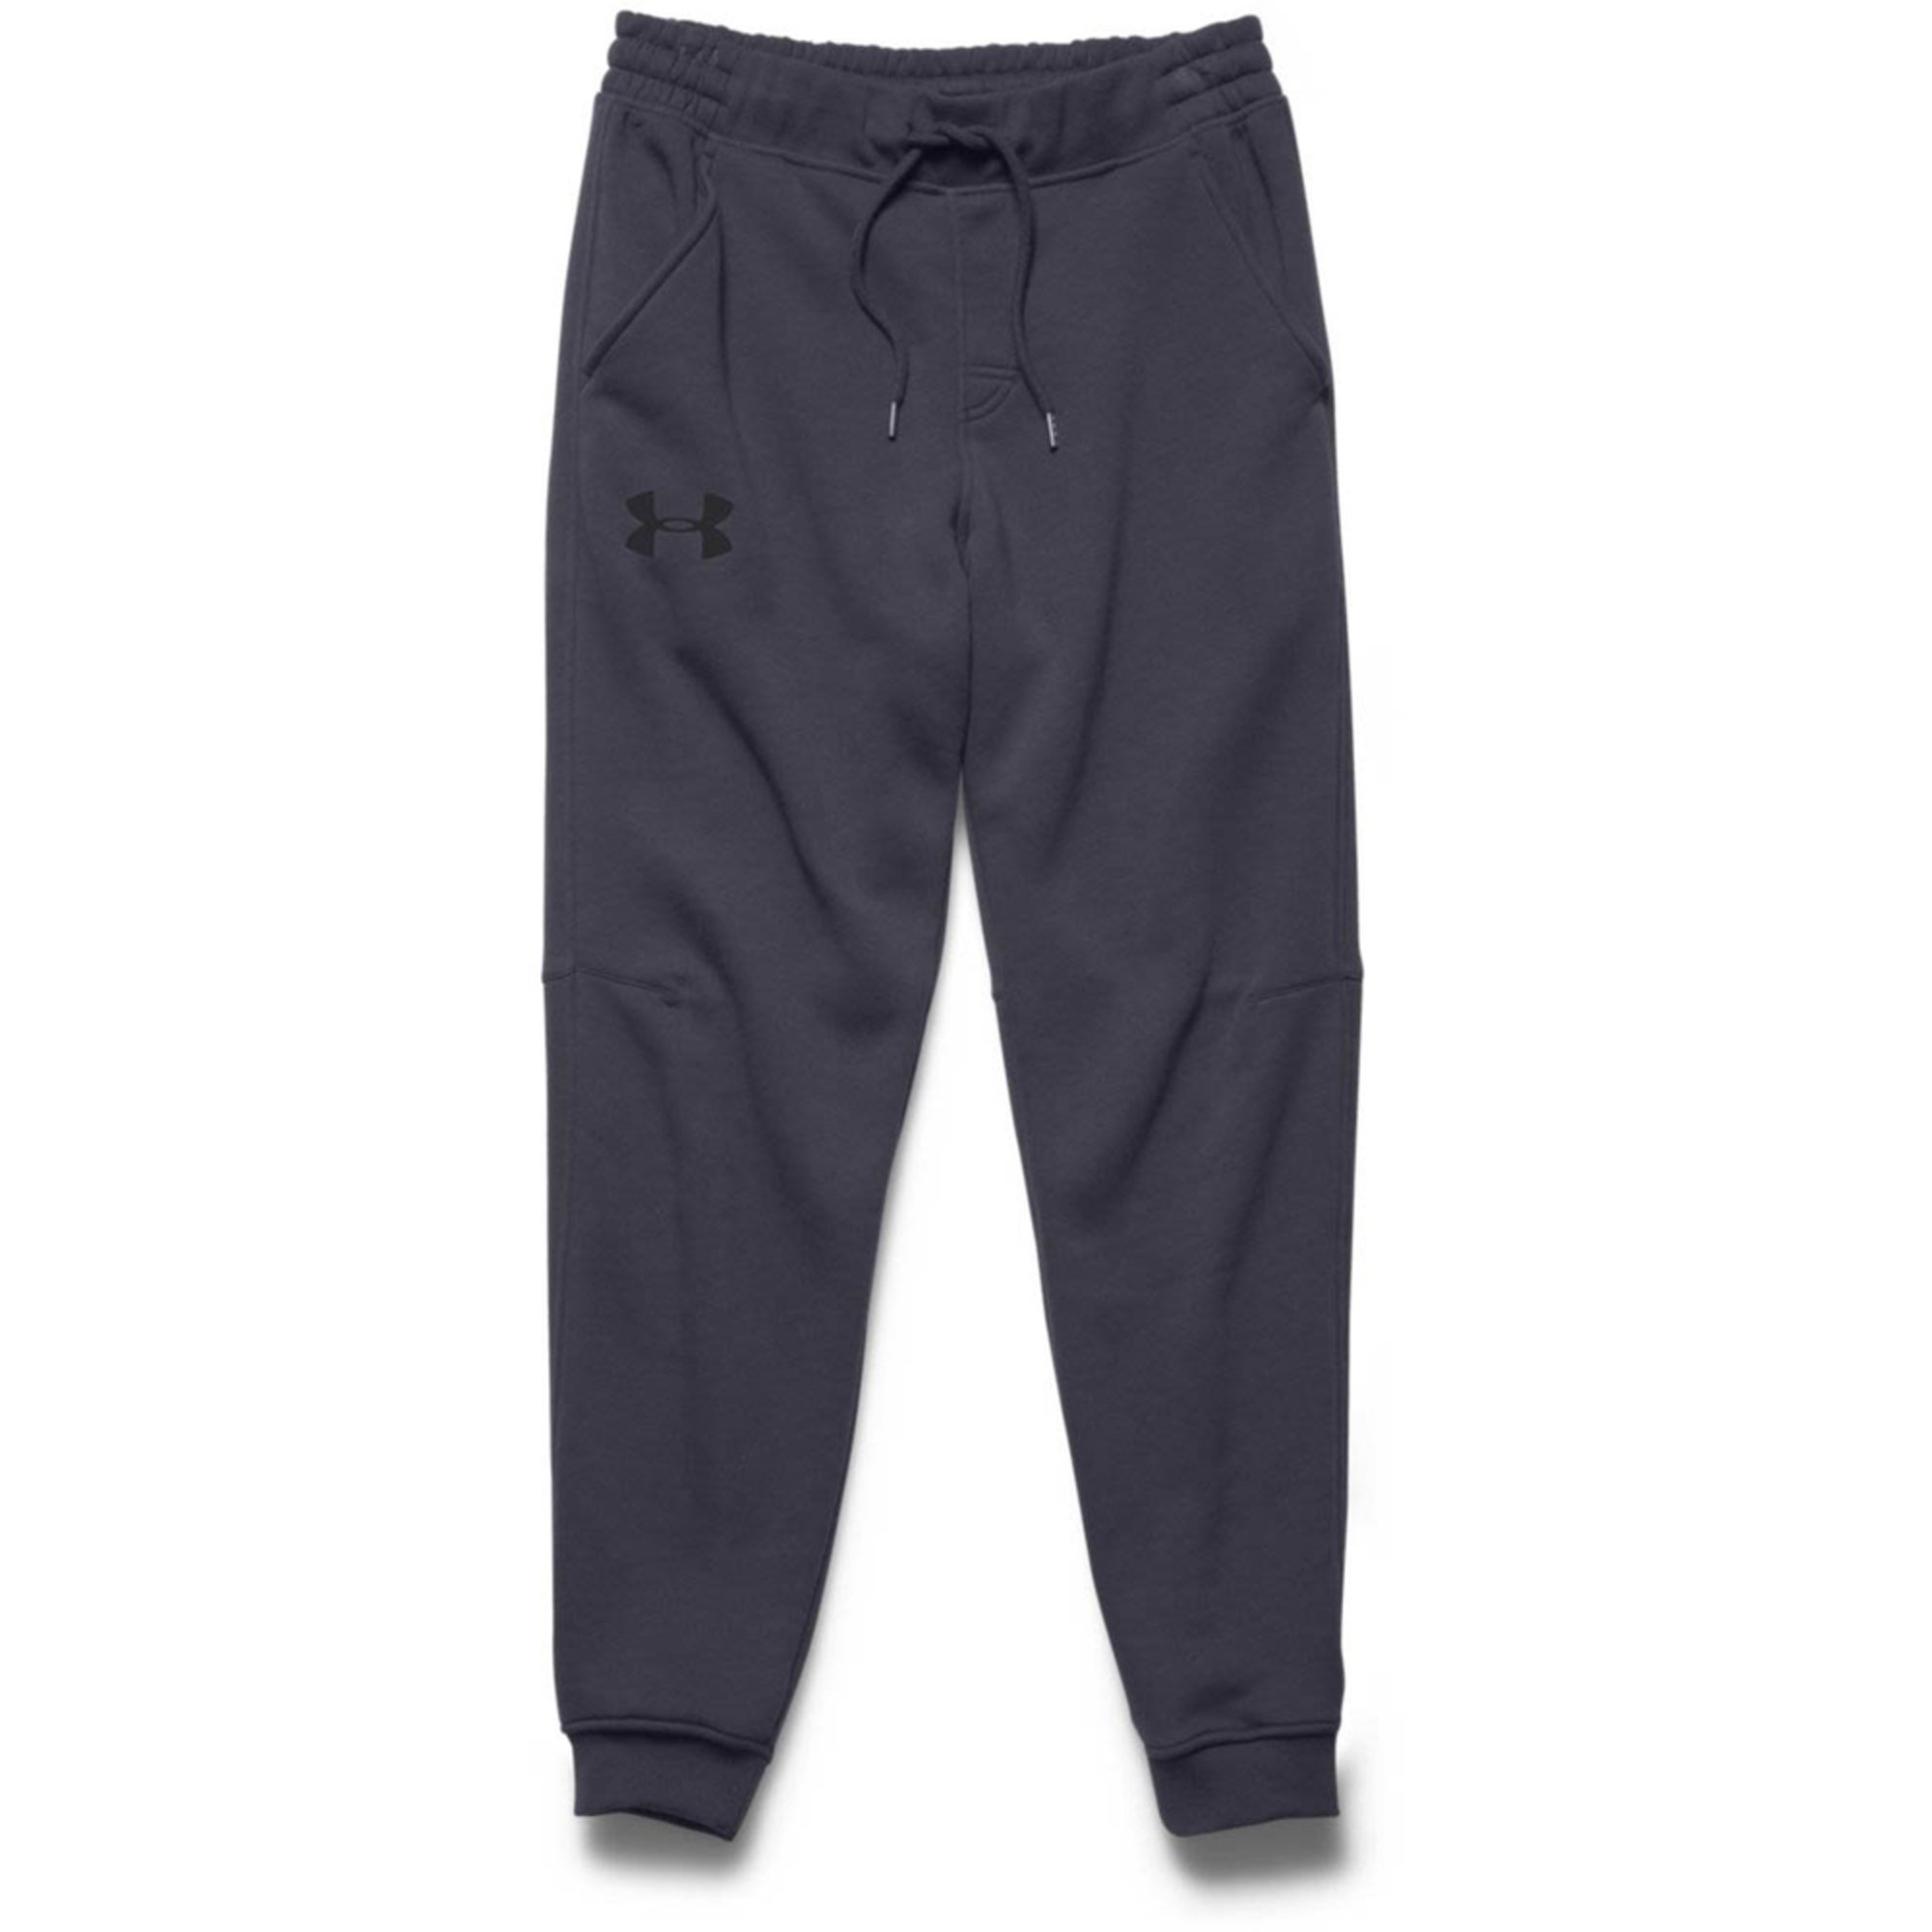 under armour under armour men s rival cotton jogger based on 0 reviews ...